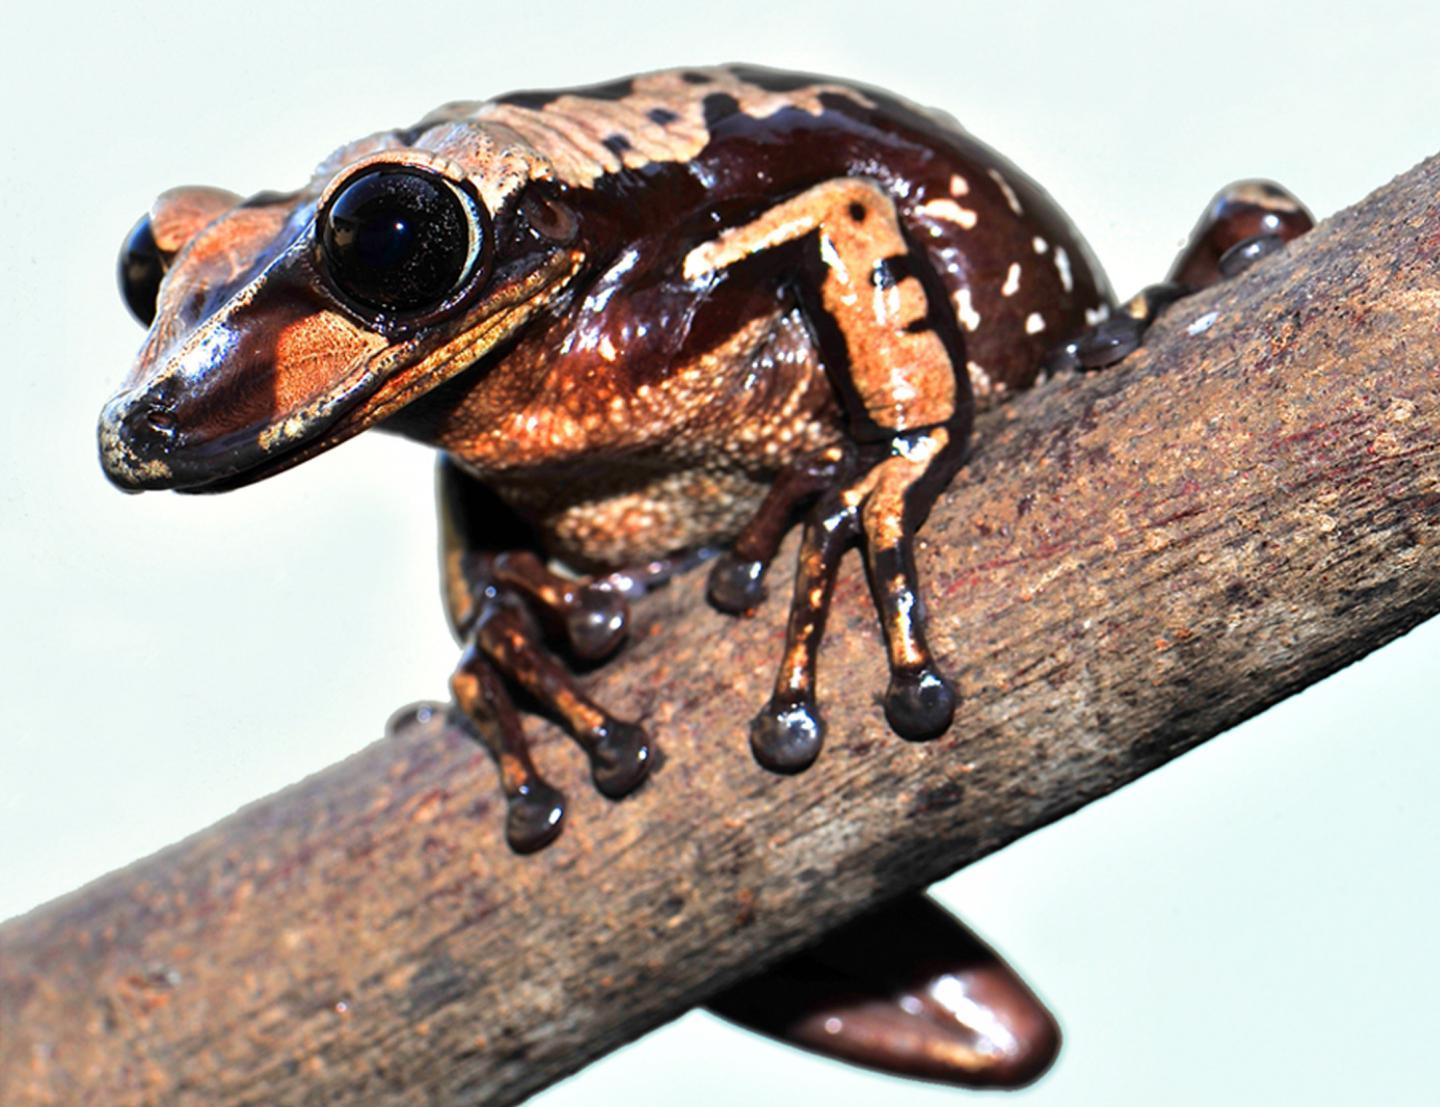 A discovered species of poisonous frogs shoots deadly venom from heads